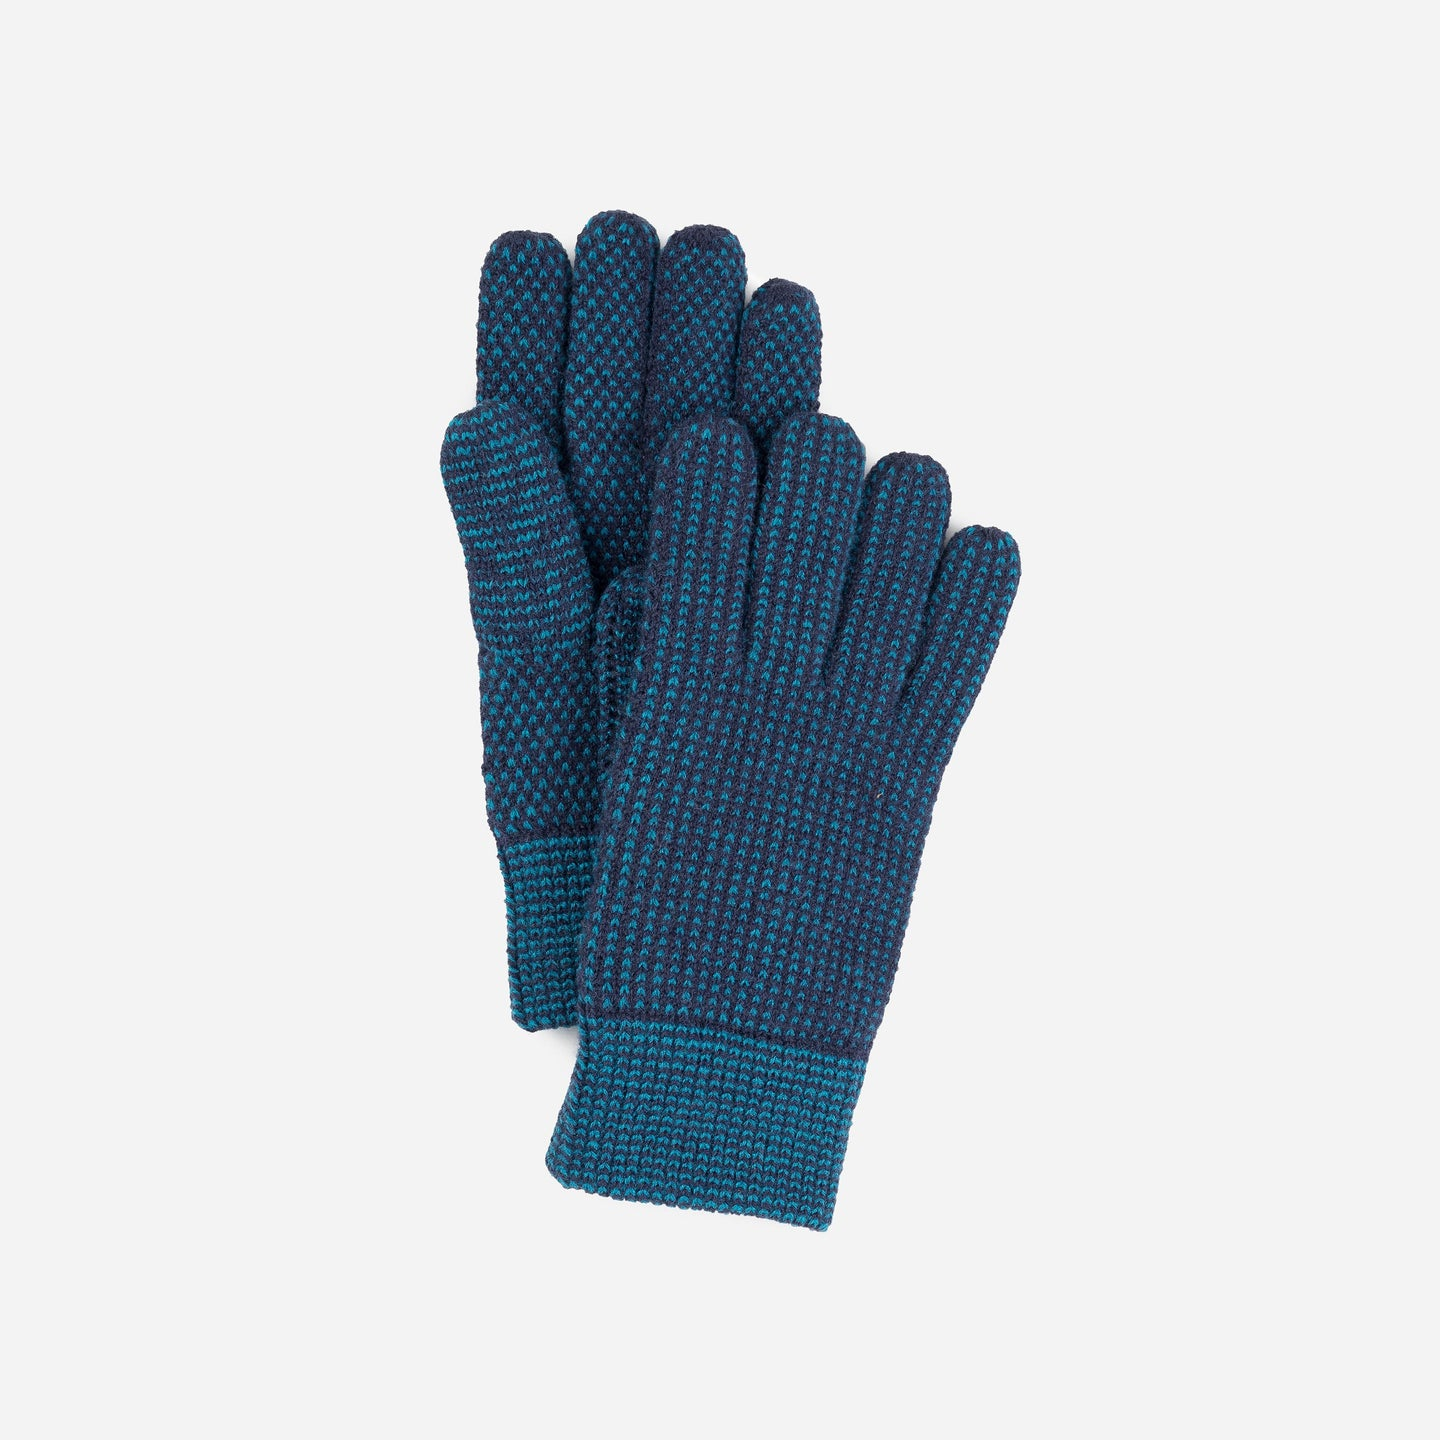 Mixed Stitch Gloves Stretch Lined Gloves